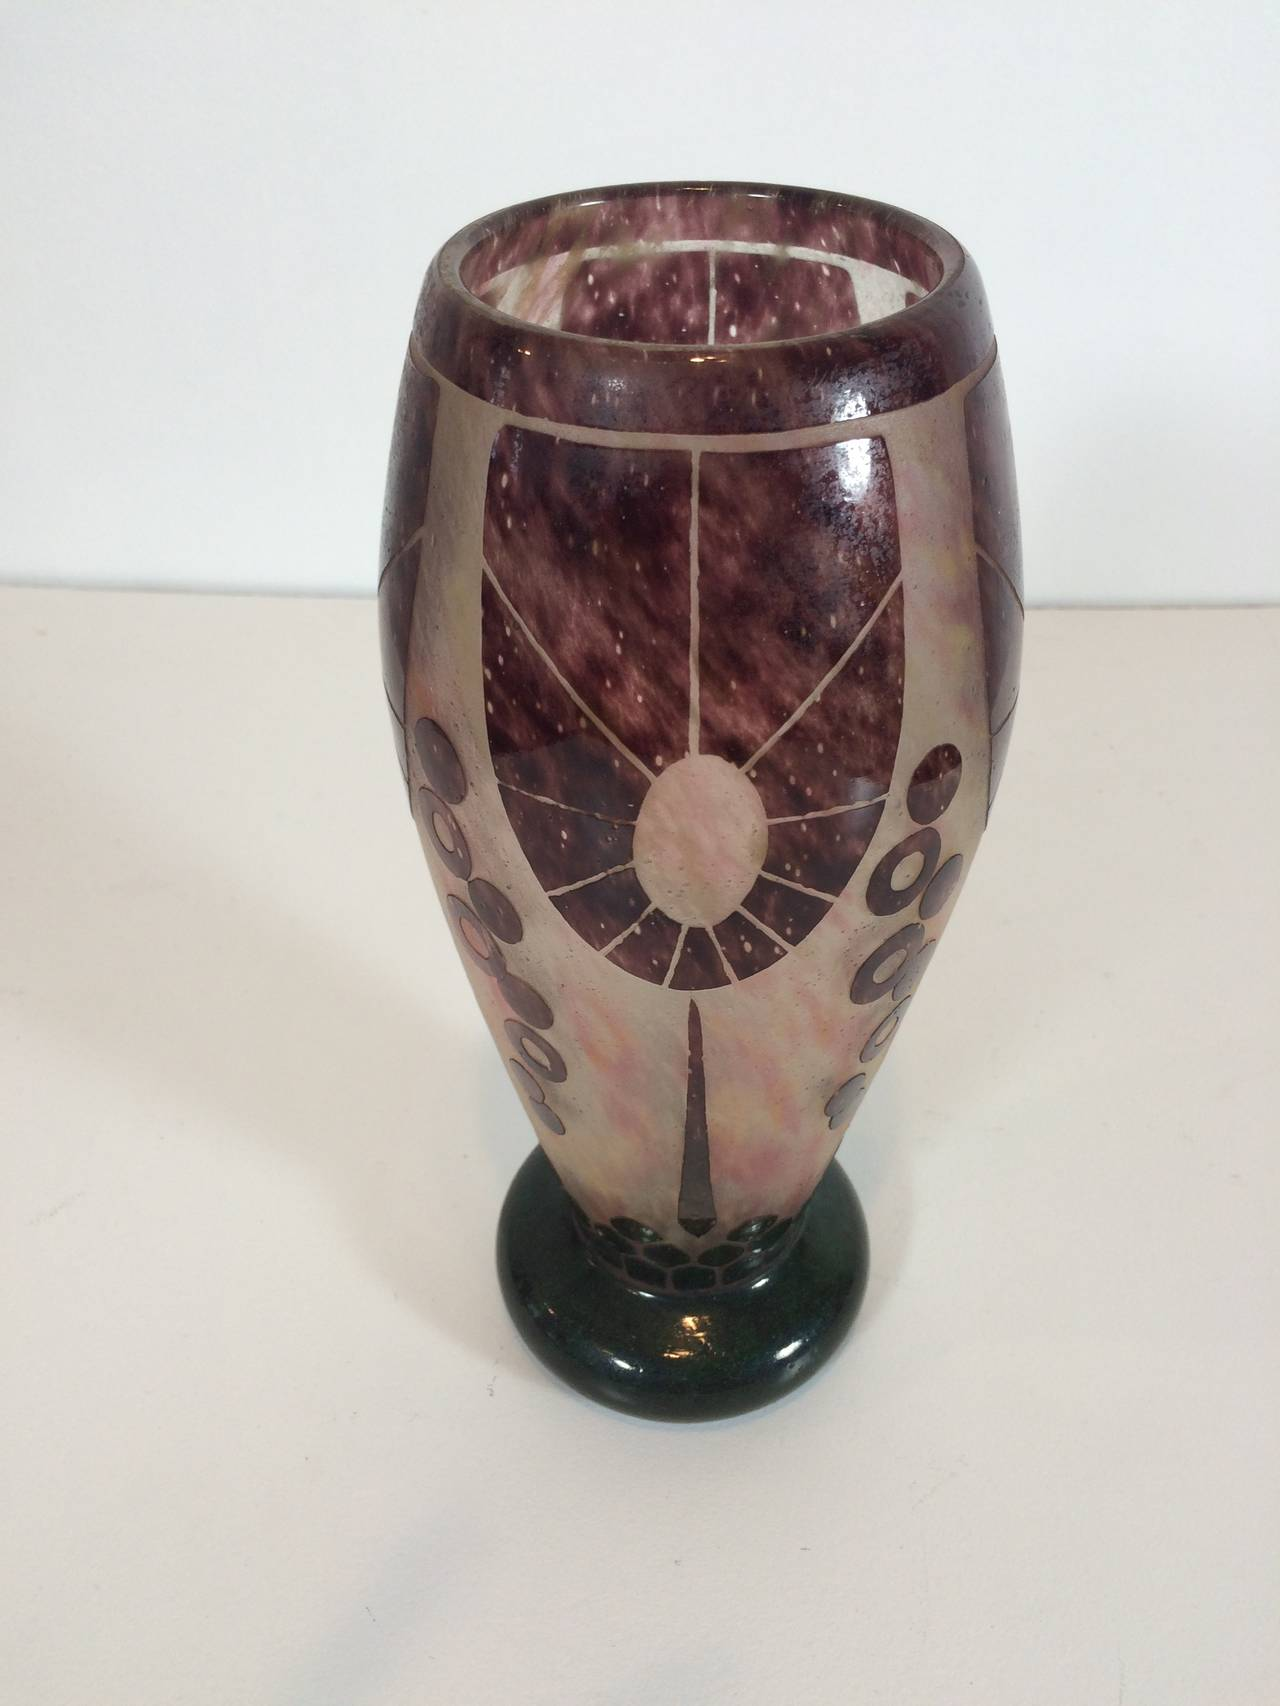 Purple with dark green base, relief and etching vase. Stunning color and form, candy cane marking on bottom indicates 1927 production. Le Verre of France.